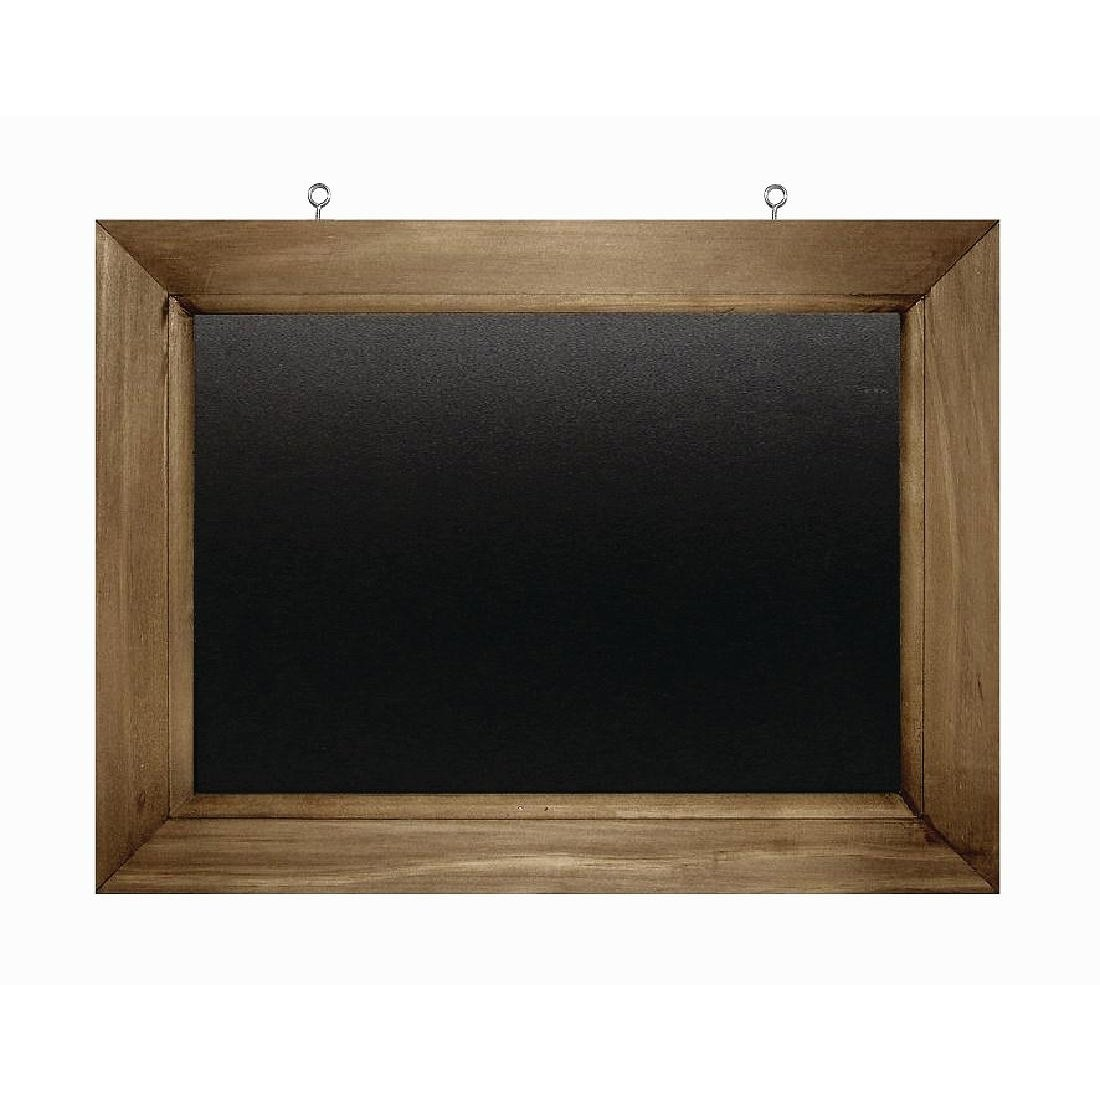 Black Chalkboard With Wood Frame 11 3/4'' x 15 3/4''